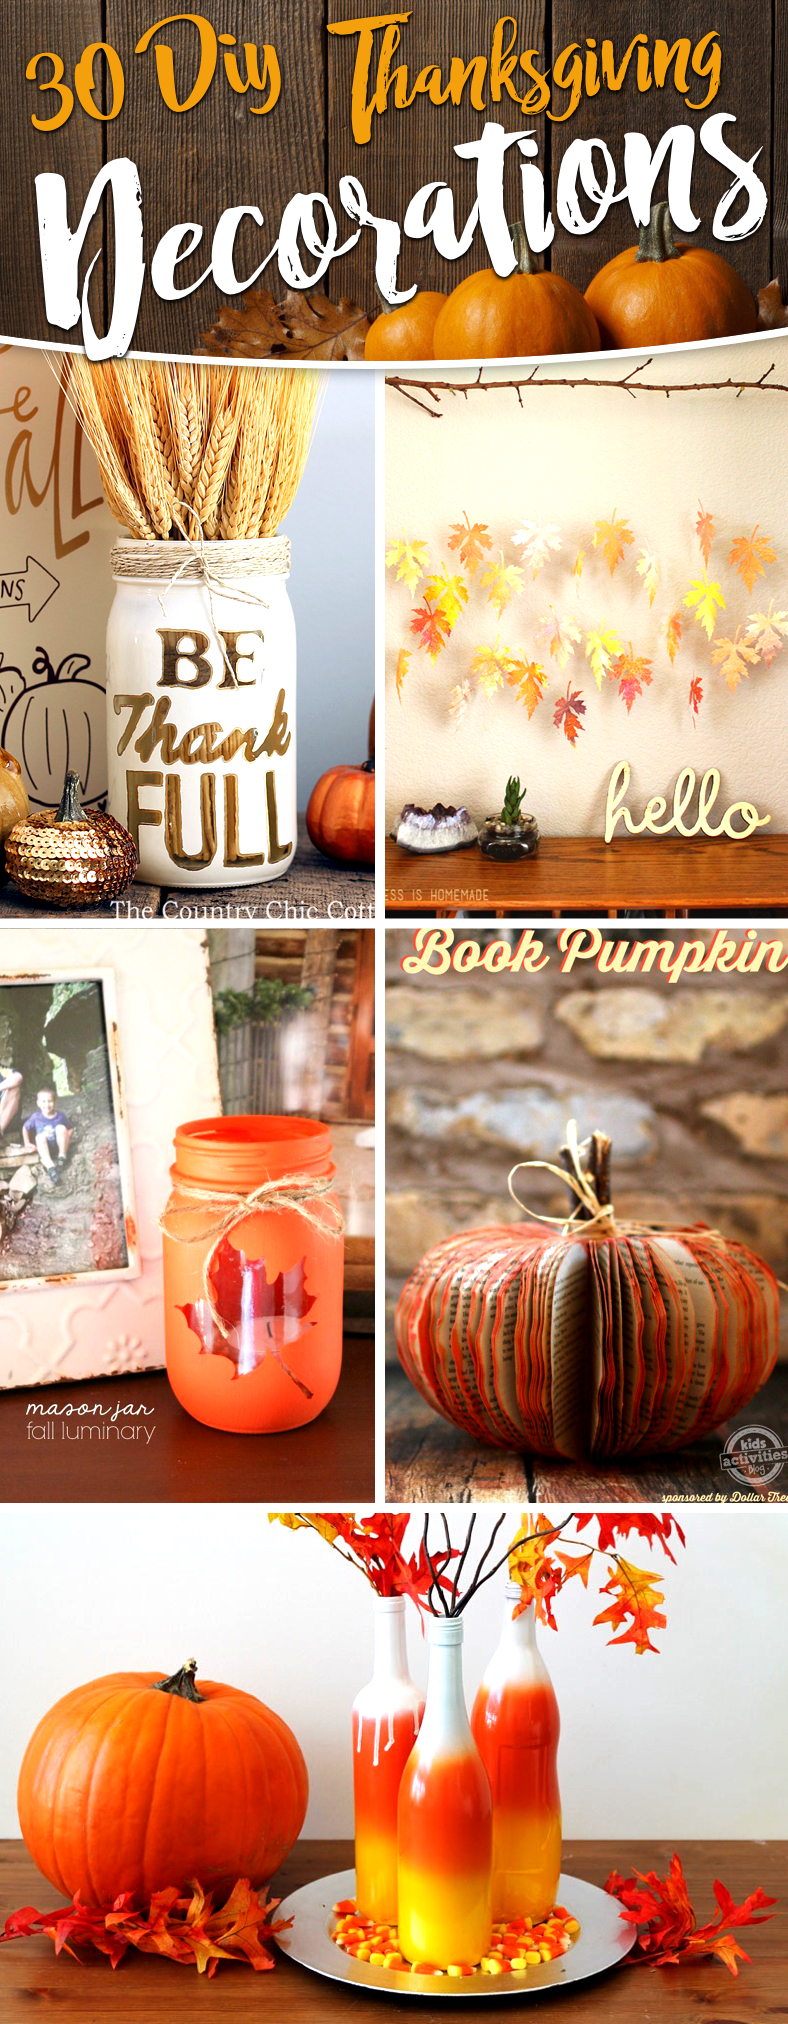 30 Diy Thanksgiving Decoration Ideas To Setup A Fall Inspired Home Cute Diy Projects